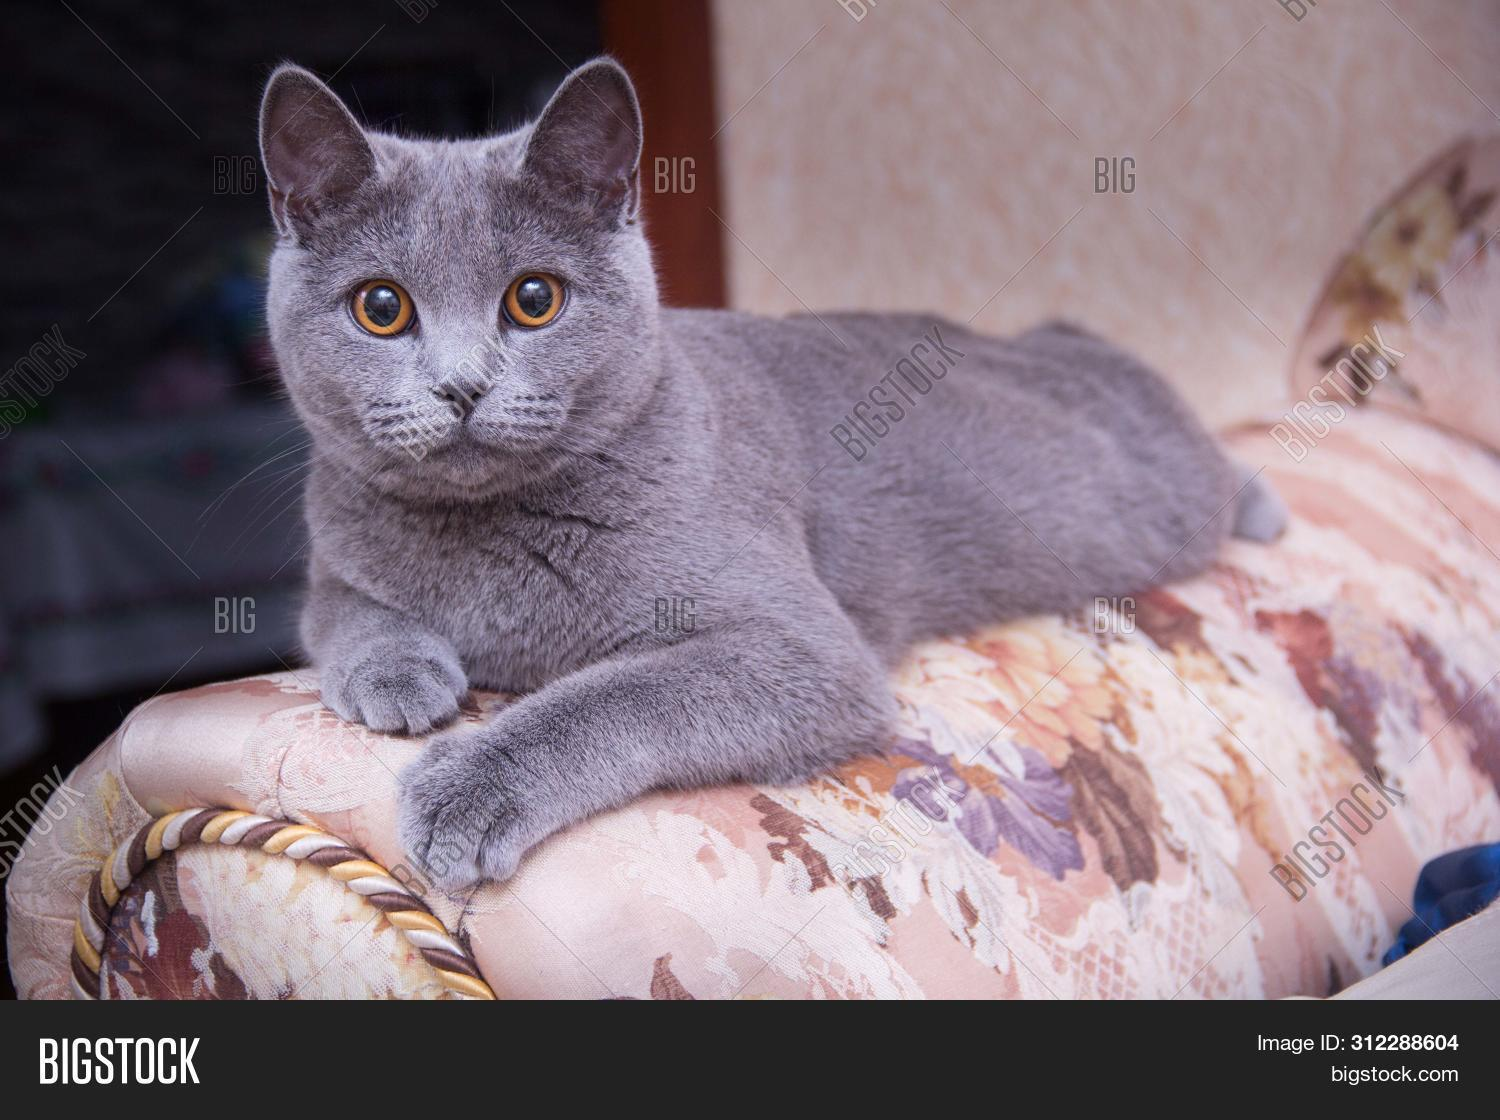 Cat Relaxing On Couch Image Photo